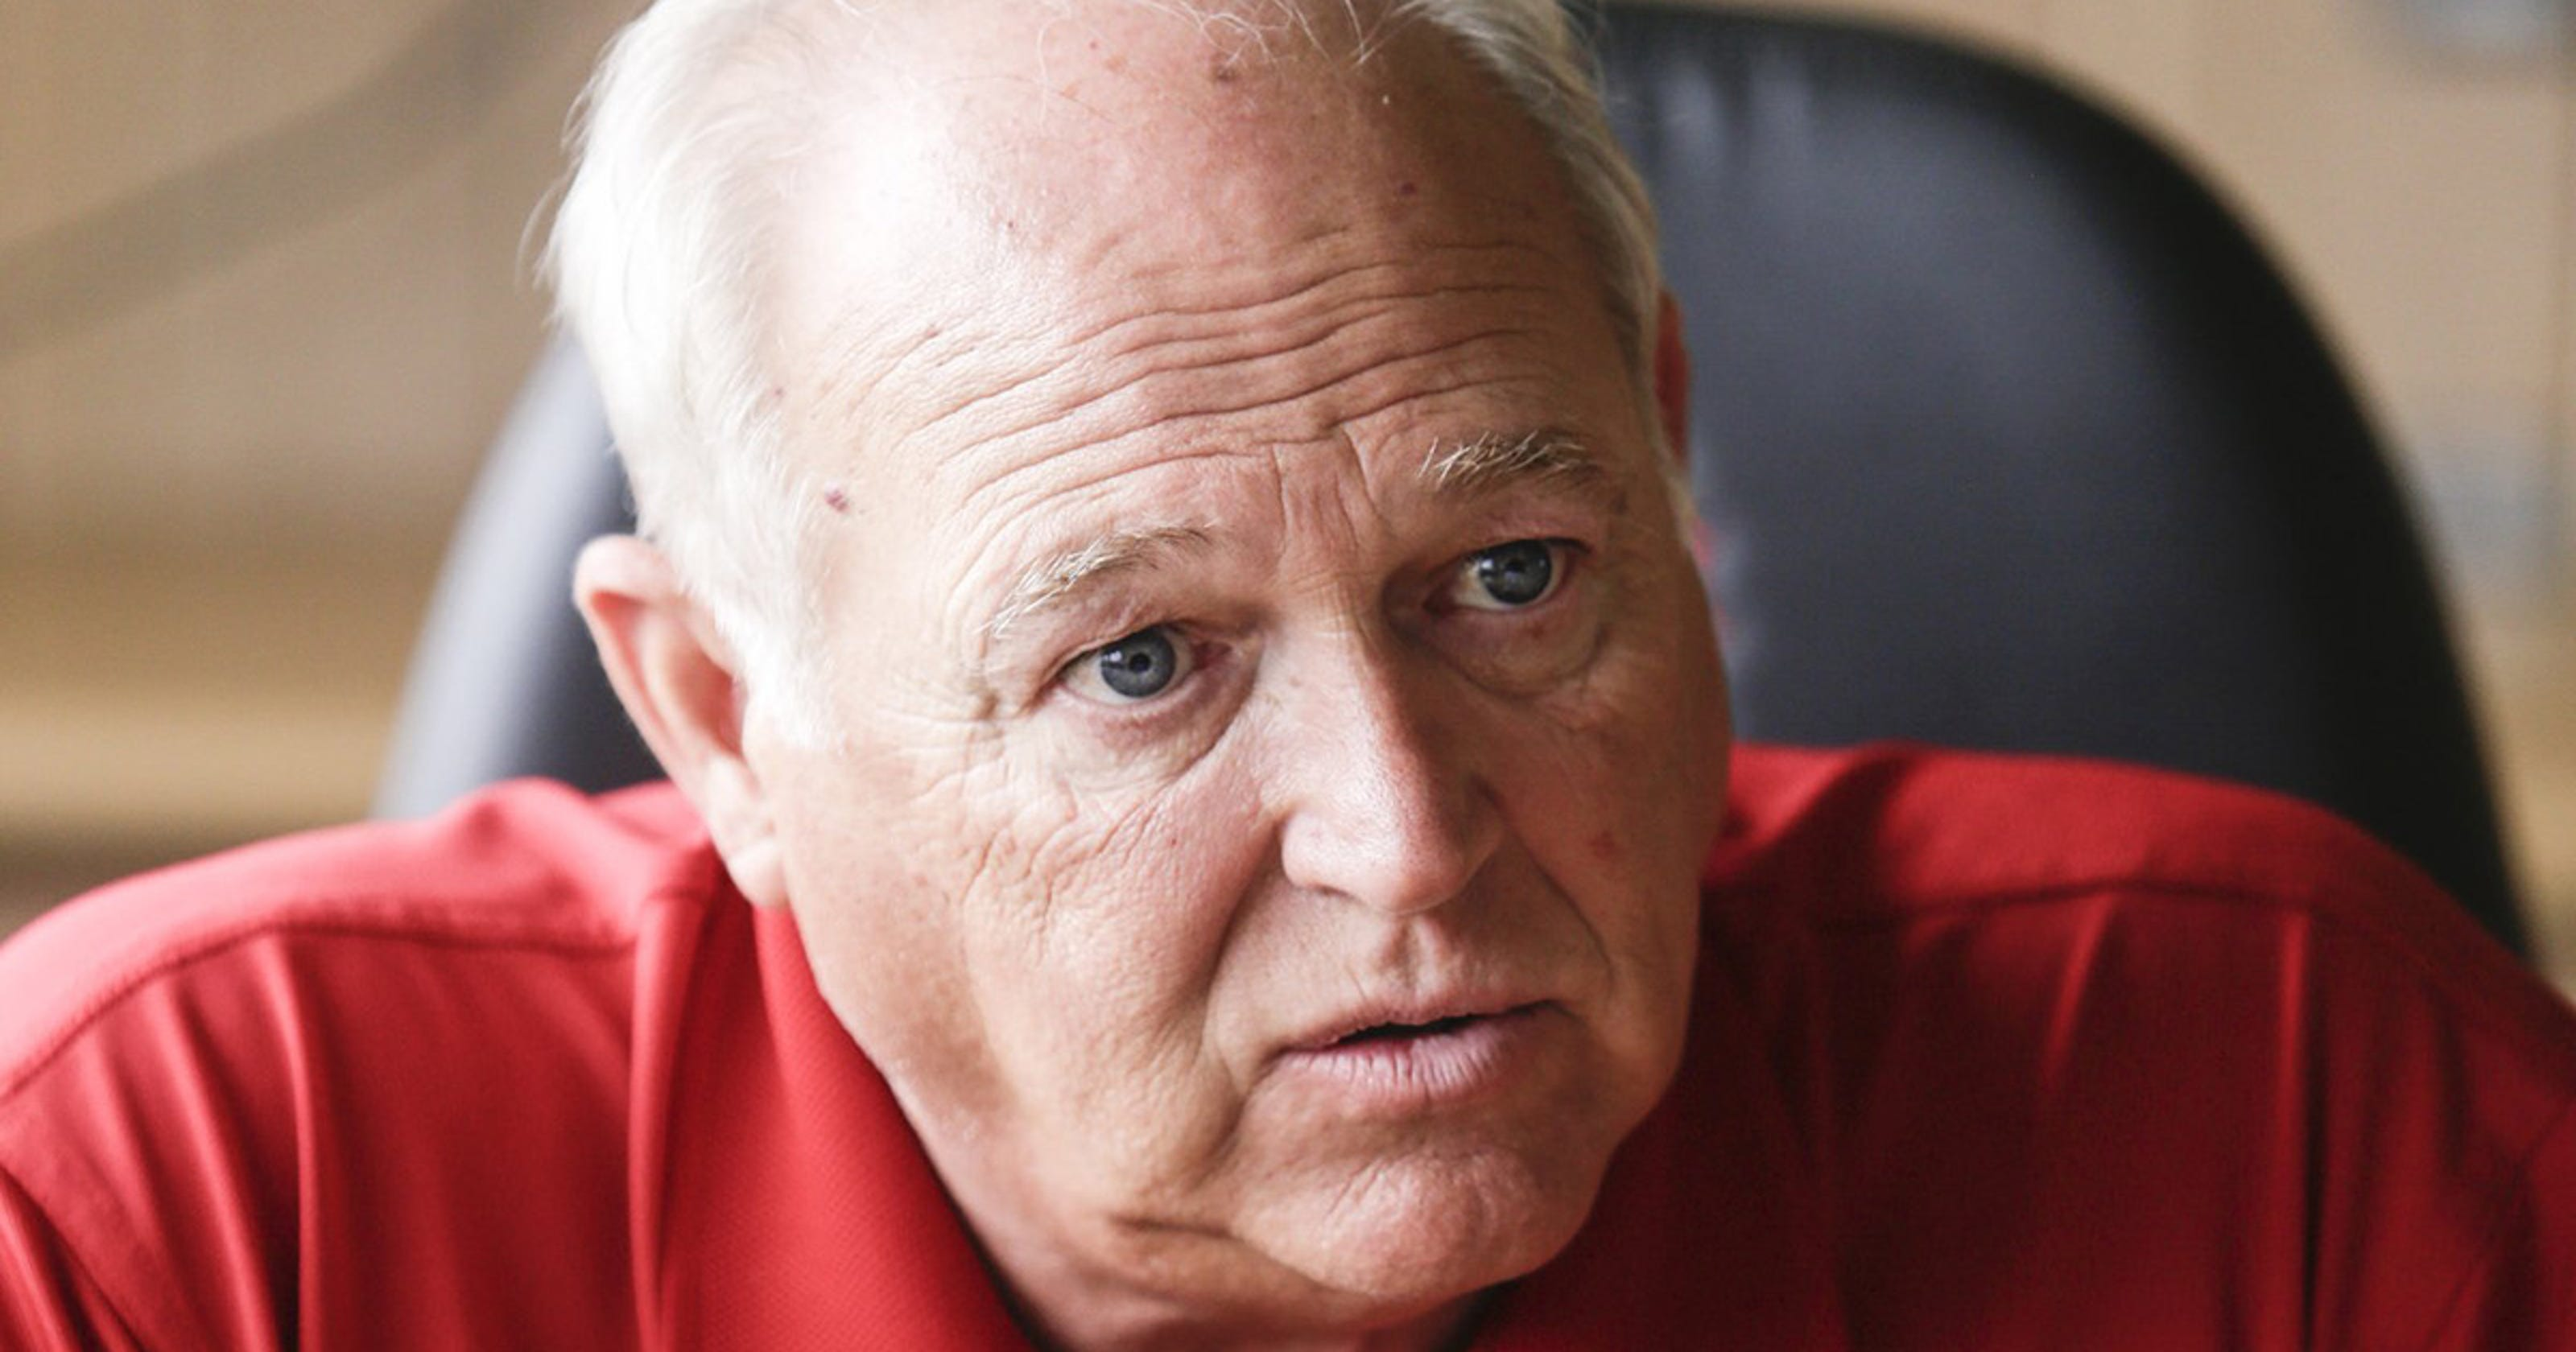 UAW open to including salaried workers in health trust